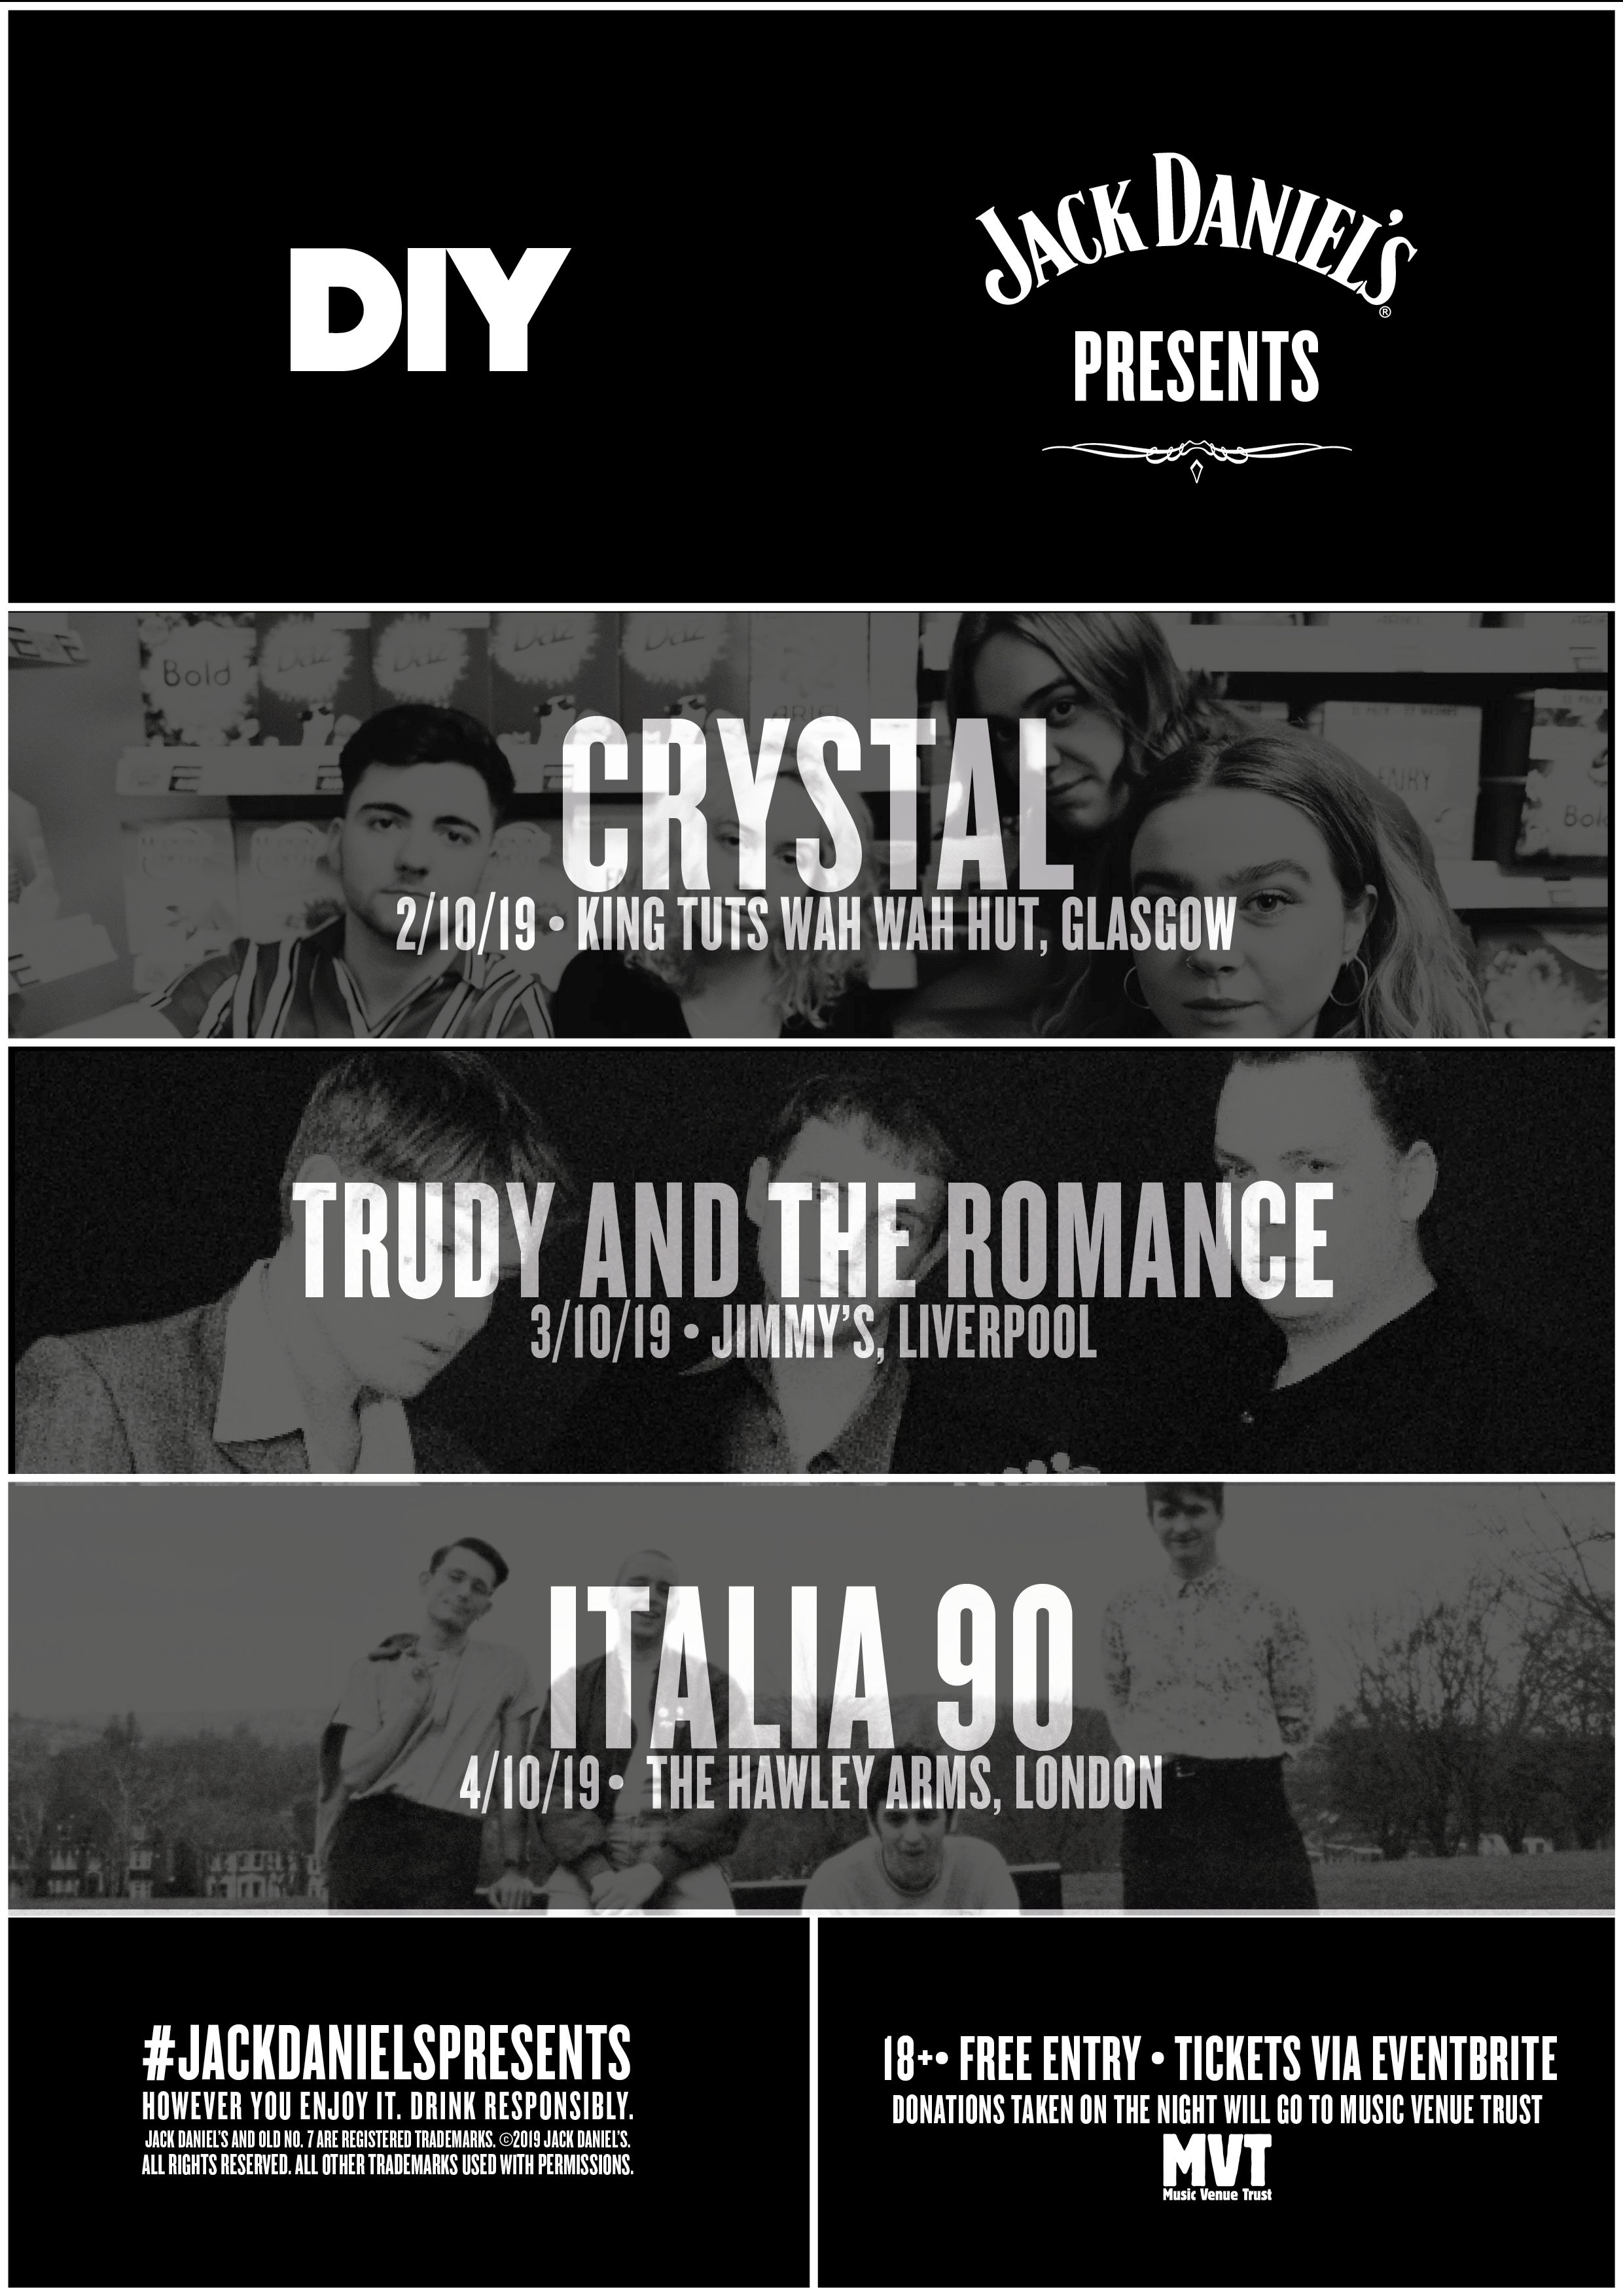 Italia 90, Trudy and the Romance & CRYSTAL for DIY & Jack Daniel's Presents UK mini-tour